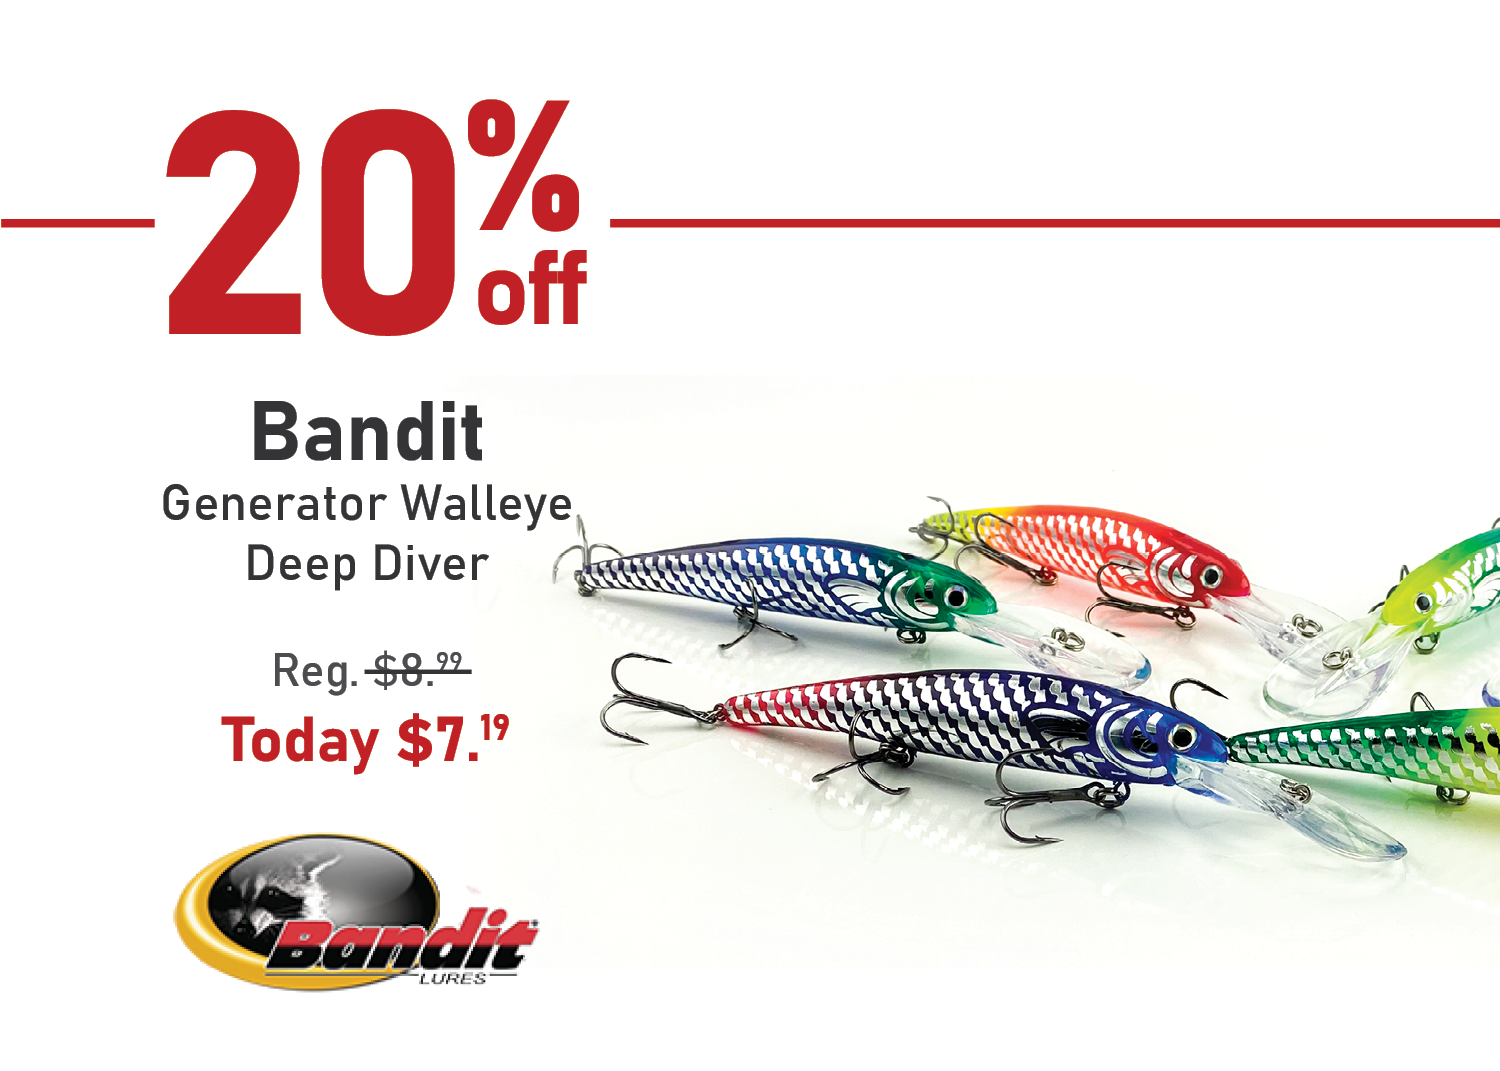 Save 20% on the Bandit Generator Walleye Deep Diver